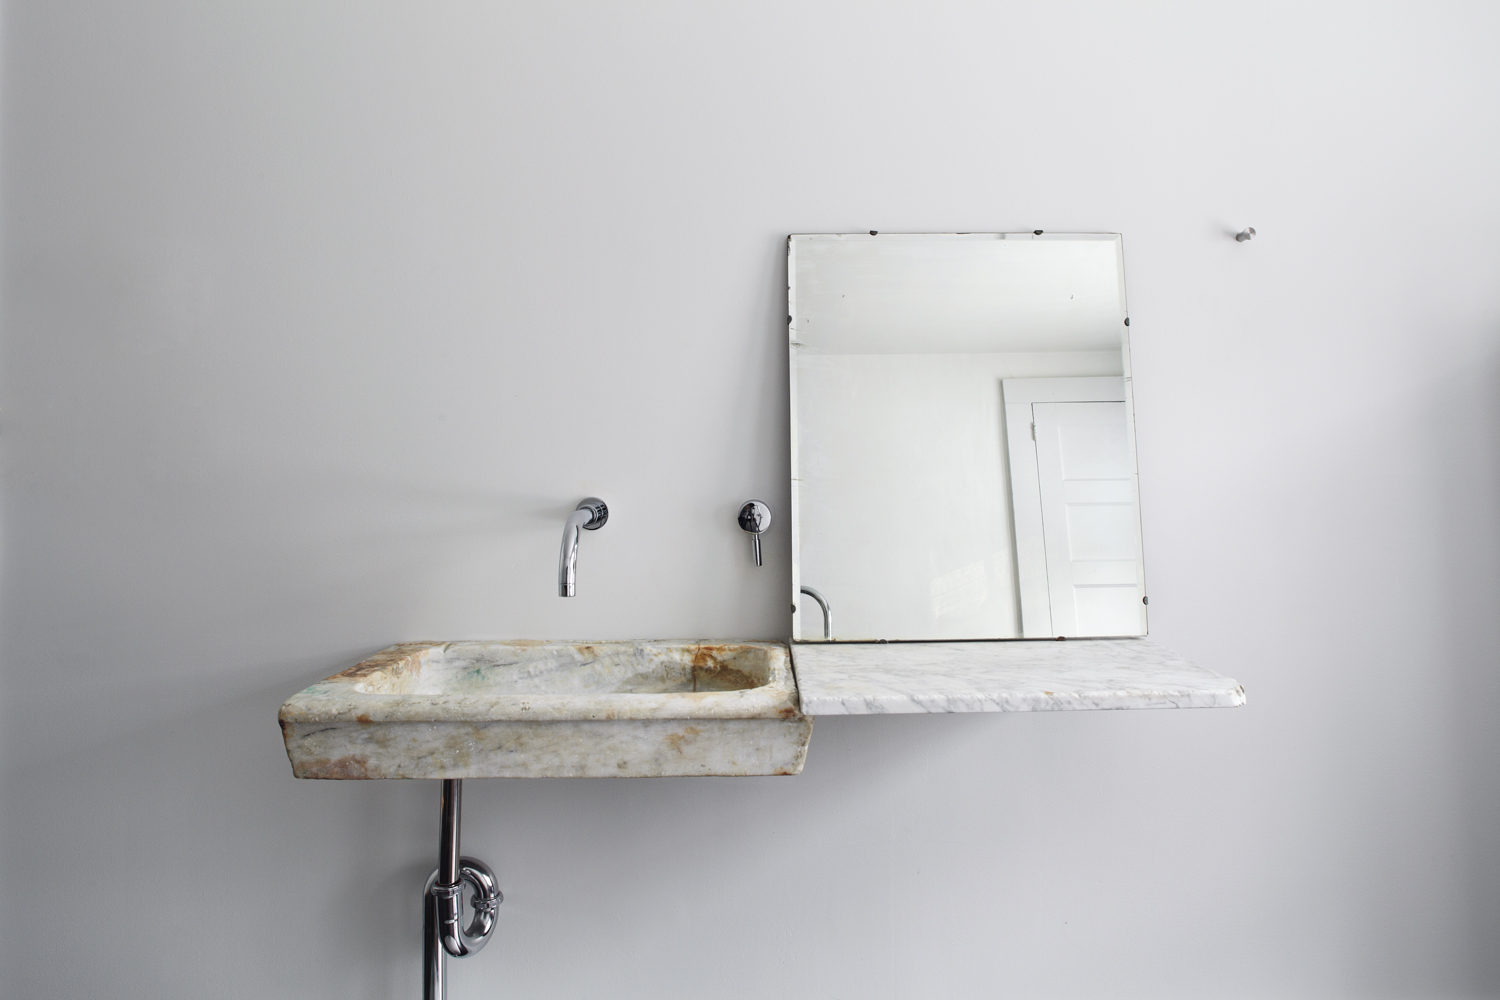 Guest bath ancient Italian marble sink in the Floating Farmhouse Catskills vacation rental in upstate New York.